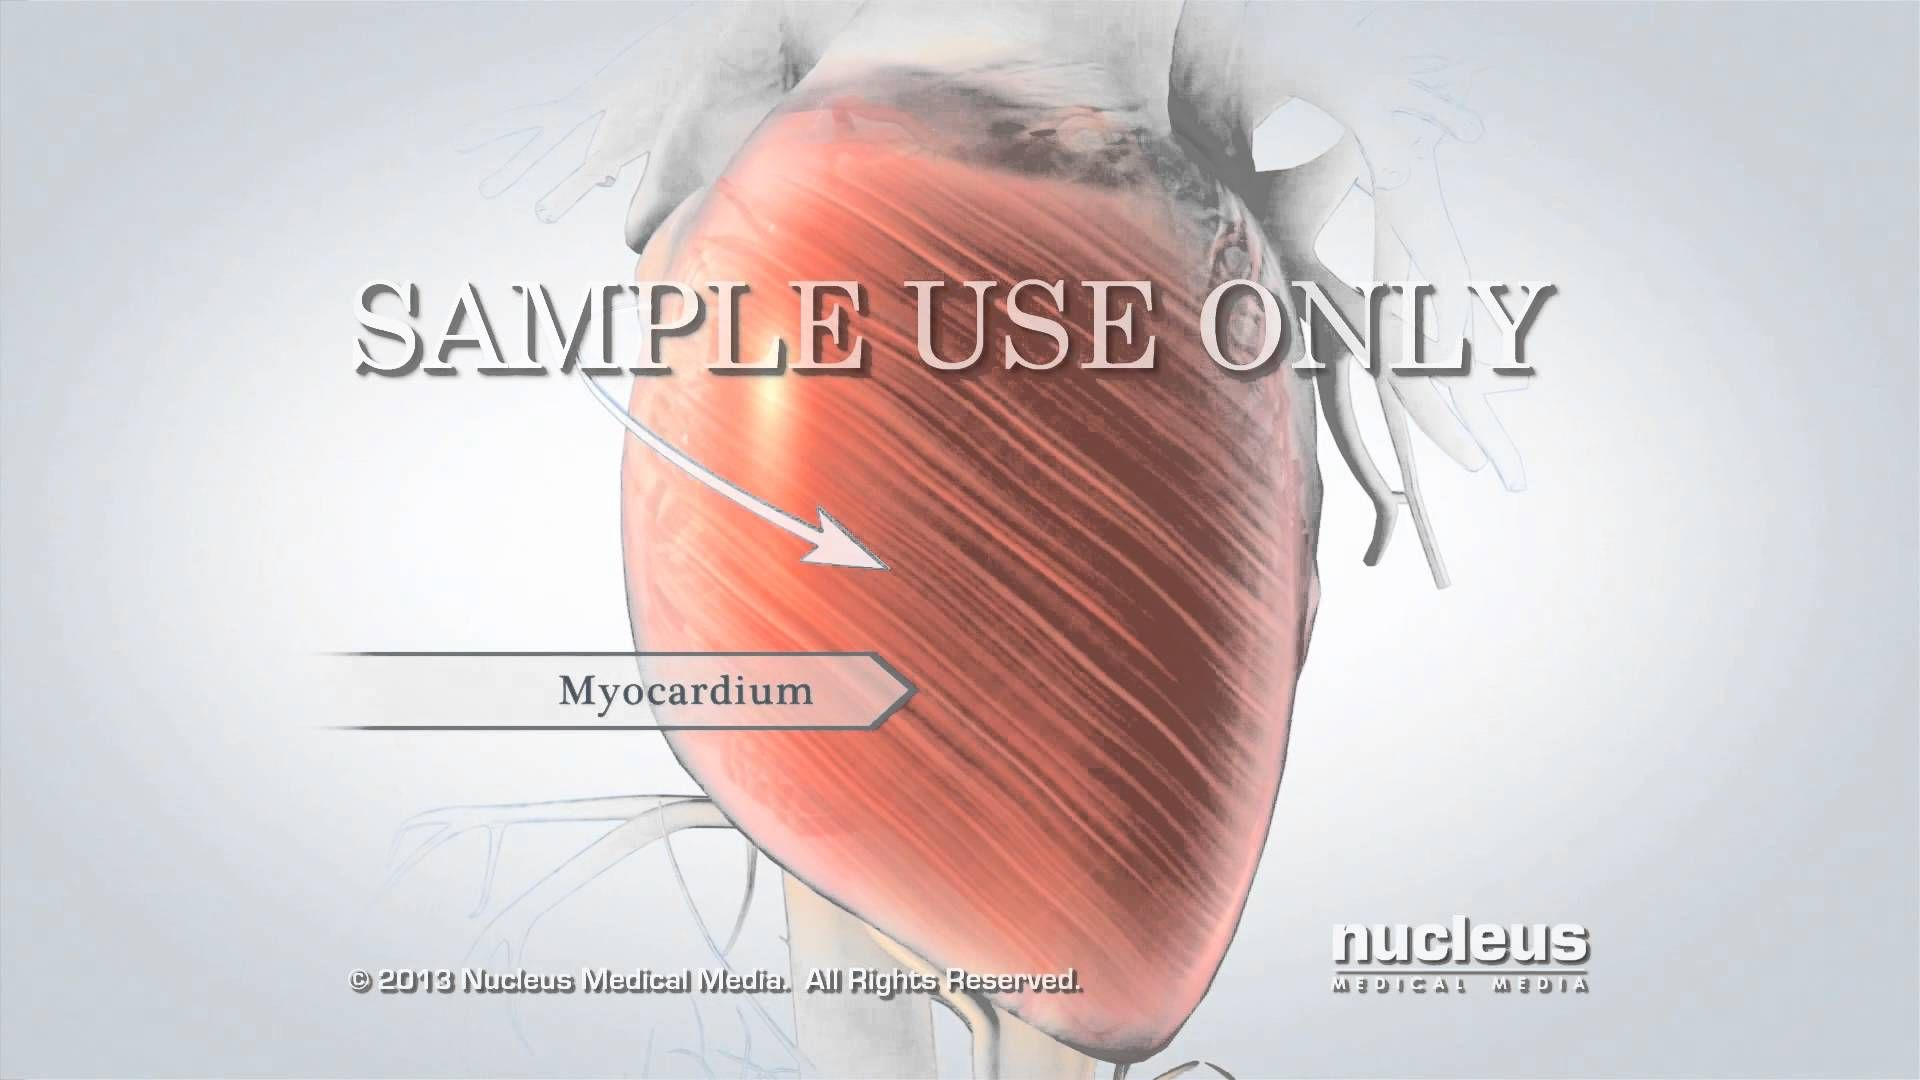 View more NUCLEUS medical animations at http://www.nucleuslibrary ...